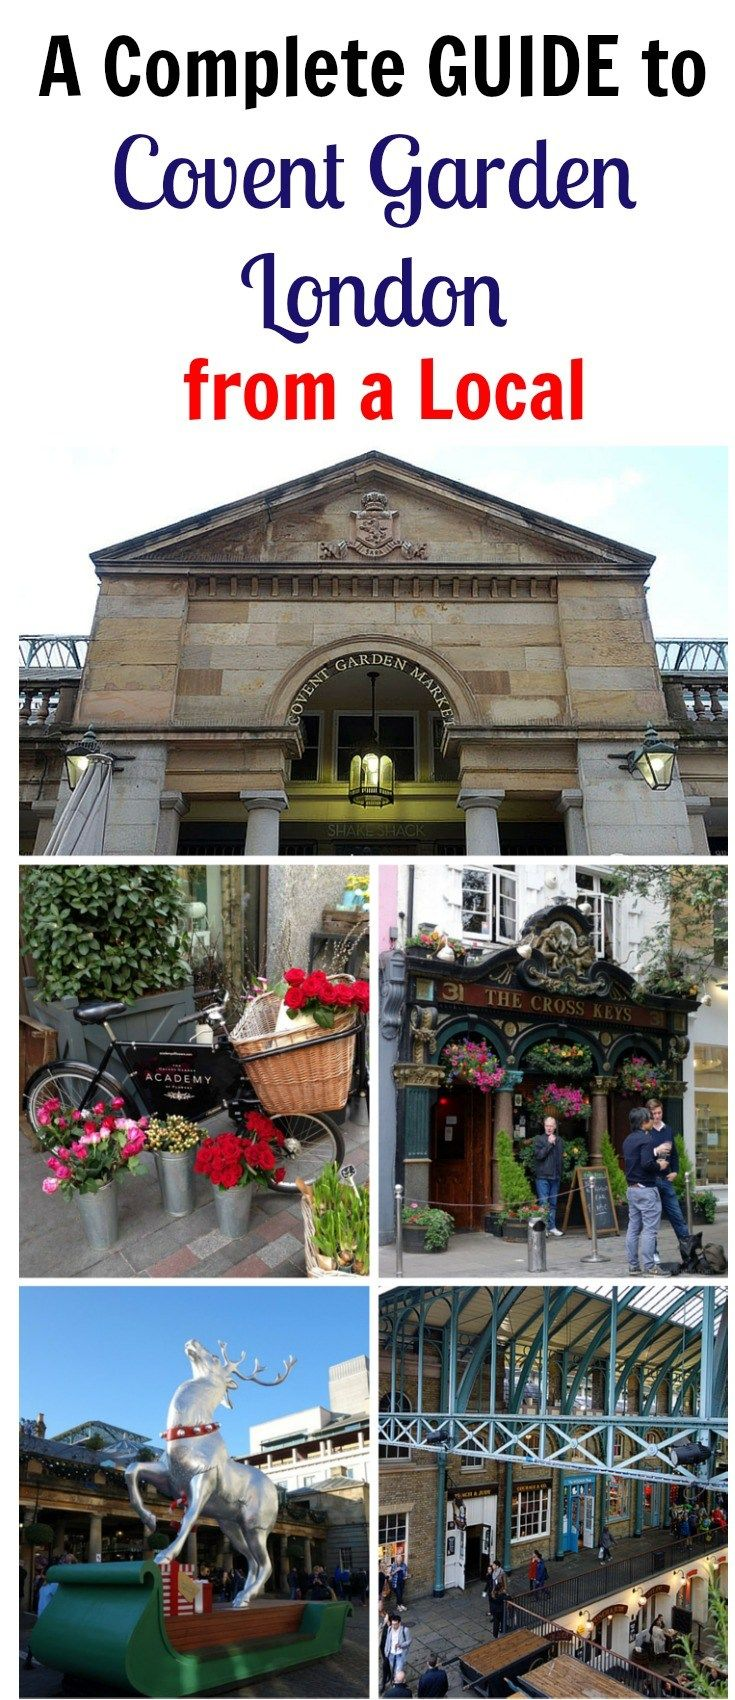 Covent Garden London Restaurants, Pubs and Attractions